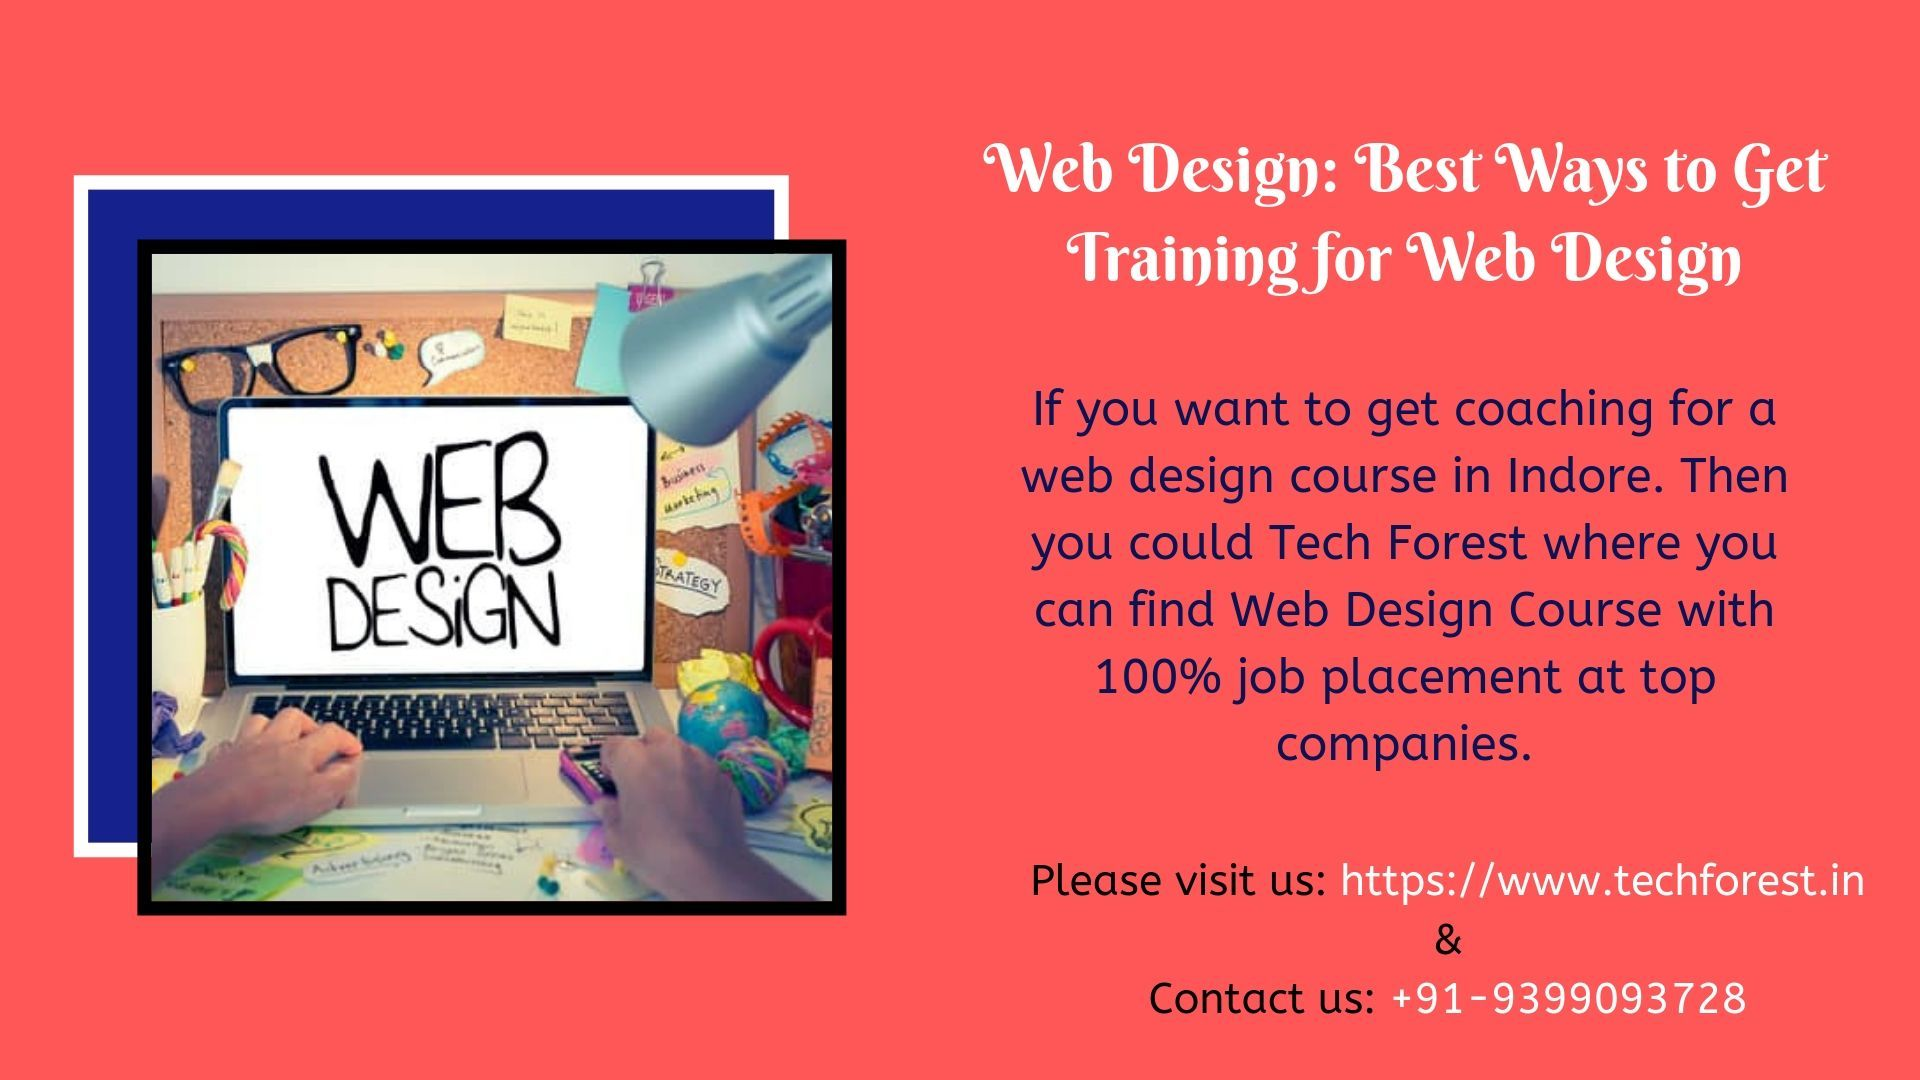 Web Design Best Ways To Get Training For Web Design Web Design Course Web Design Web Design Training